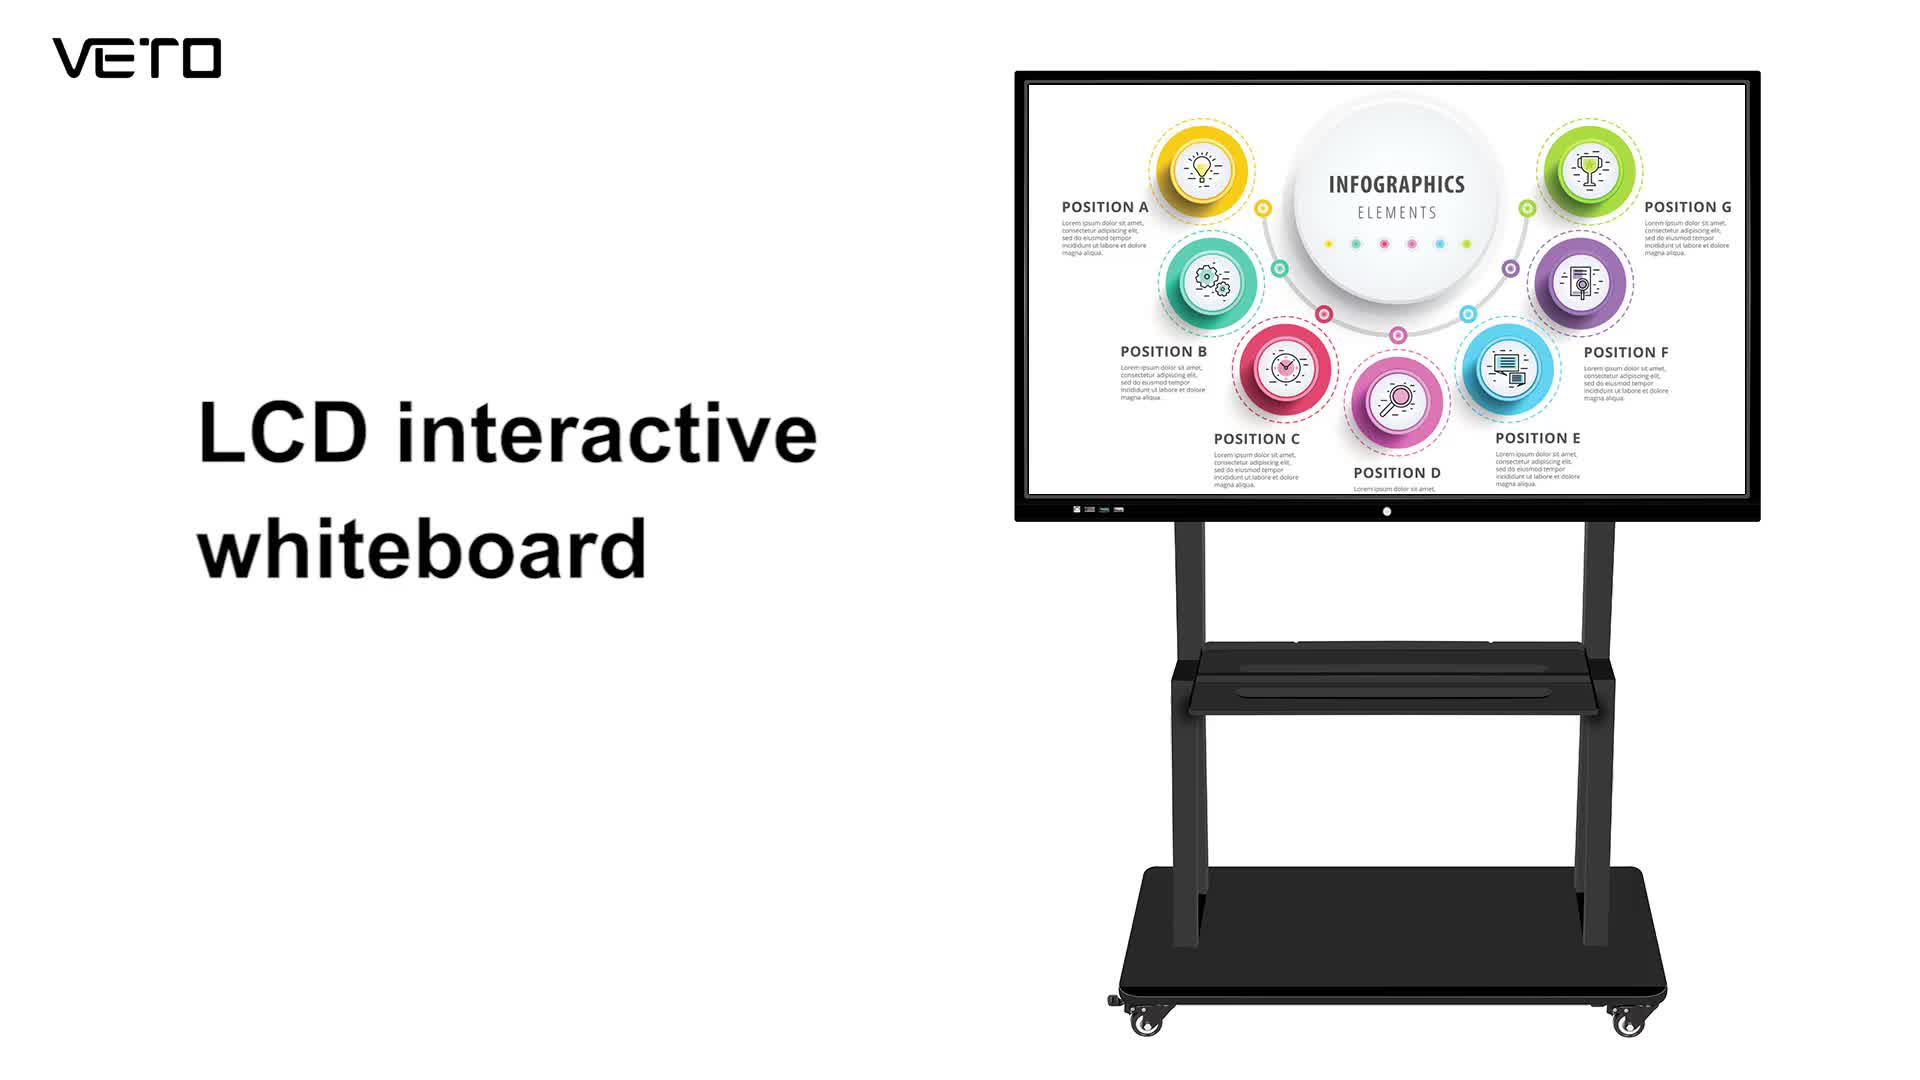 86 inch interactive flat panel multi touch screen interactive smart board Led-Lcd display interactive whiteboard manufacturer